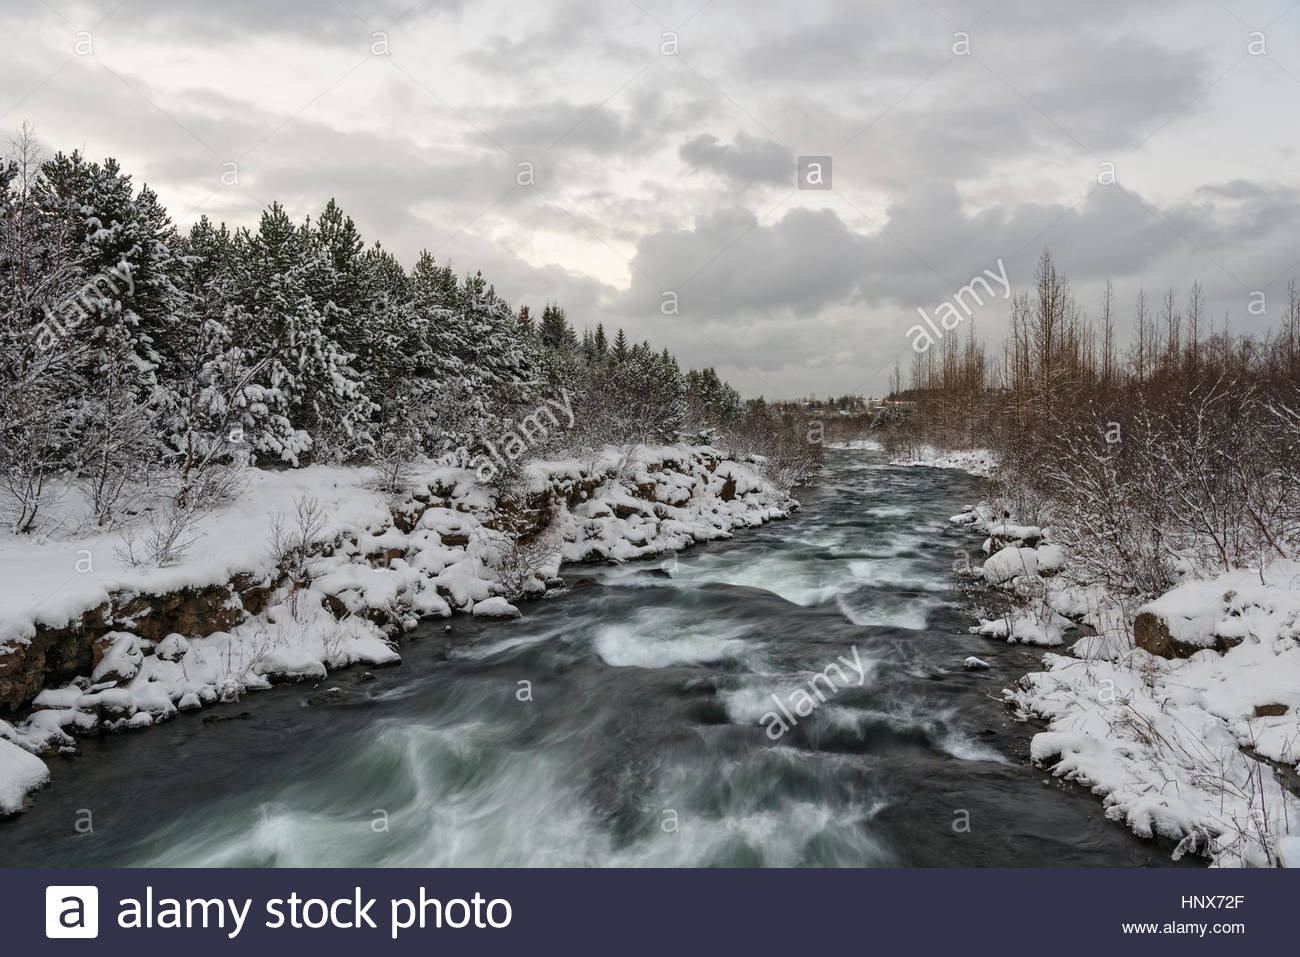 River with strong current, Ellidaardalur, Iceland - Stock Image